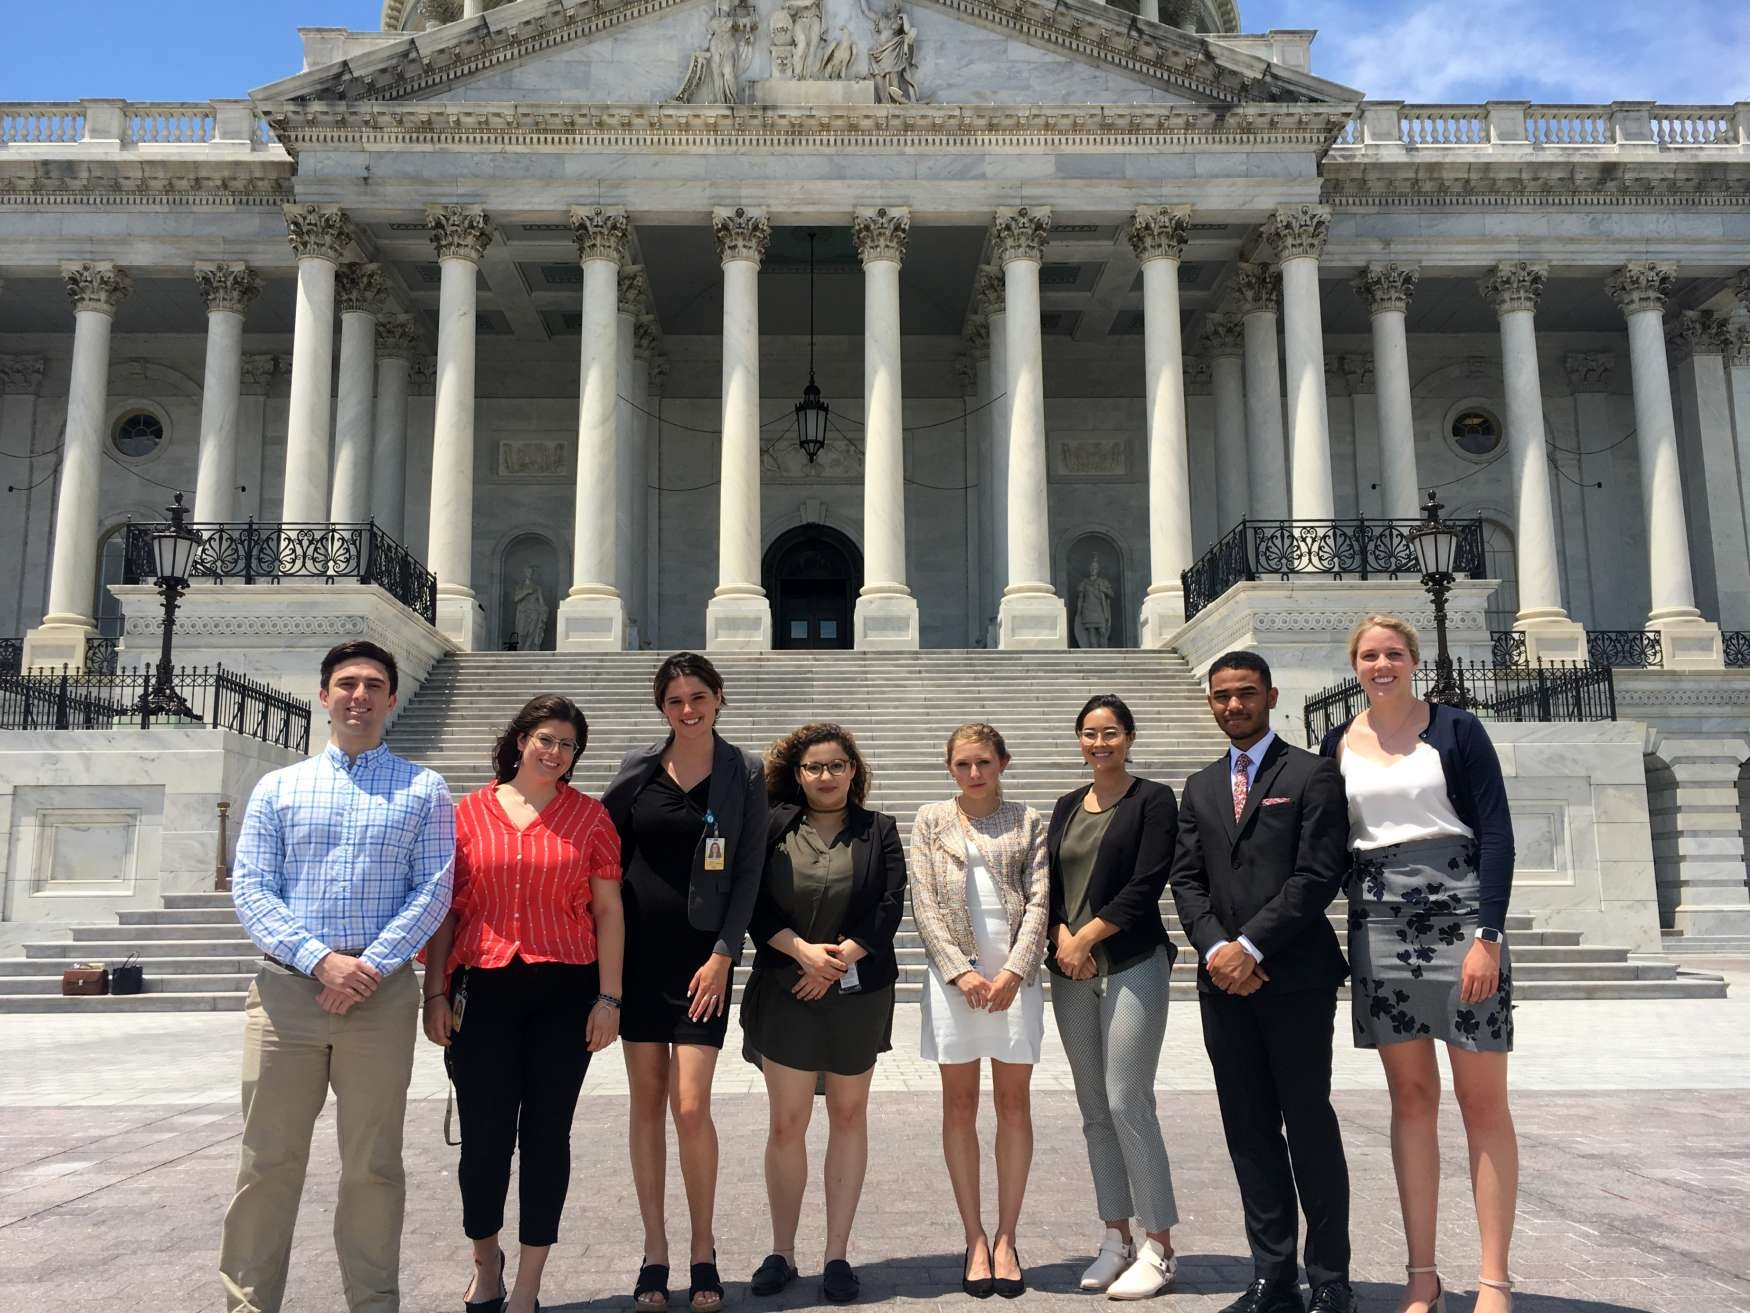 Summer 2019 congressional interns from Columbia standing in front of the Capitol building. (Left to right: Noah Chase Widmann CC'20; Sofia Garcia-George CC'21; Lilly Anderson, Barnard '21; Nada Zohayr CC'21; Emily Digman CC'20; Ciara Johnson CC'21; Kareem Sidibe CC'22; Allyssa Phelps CC'21)